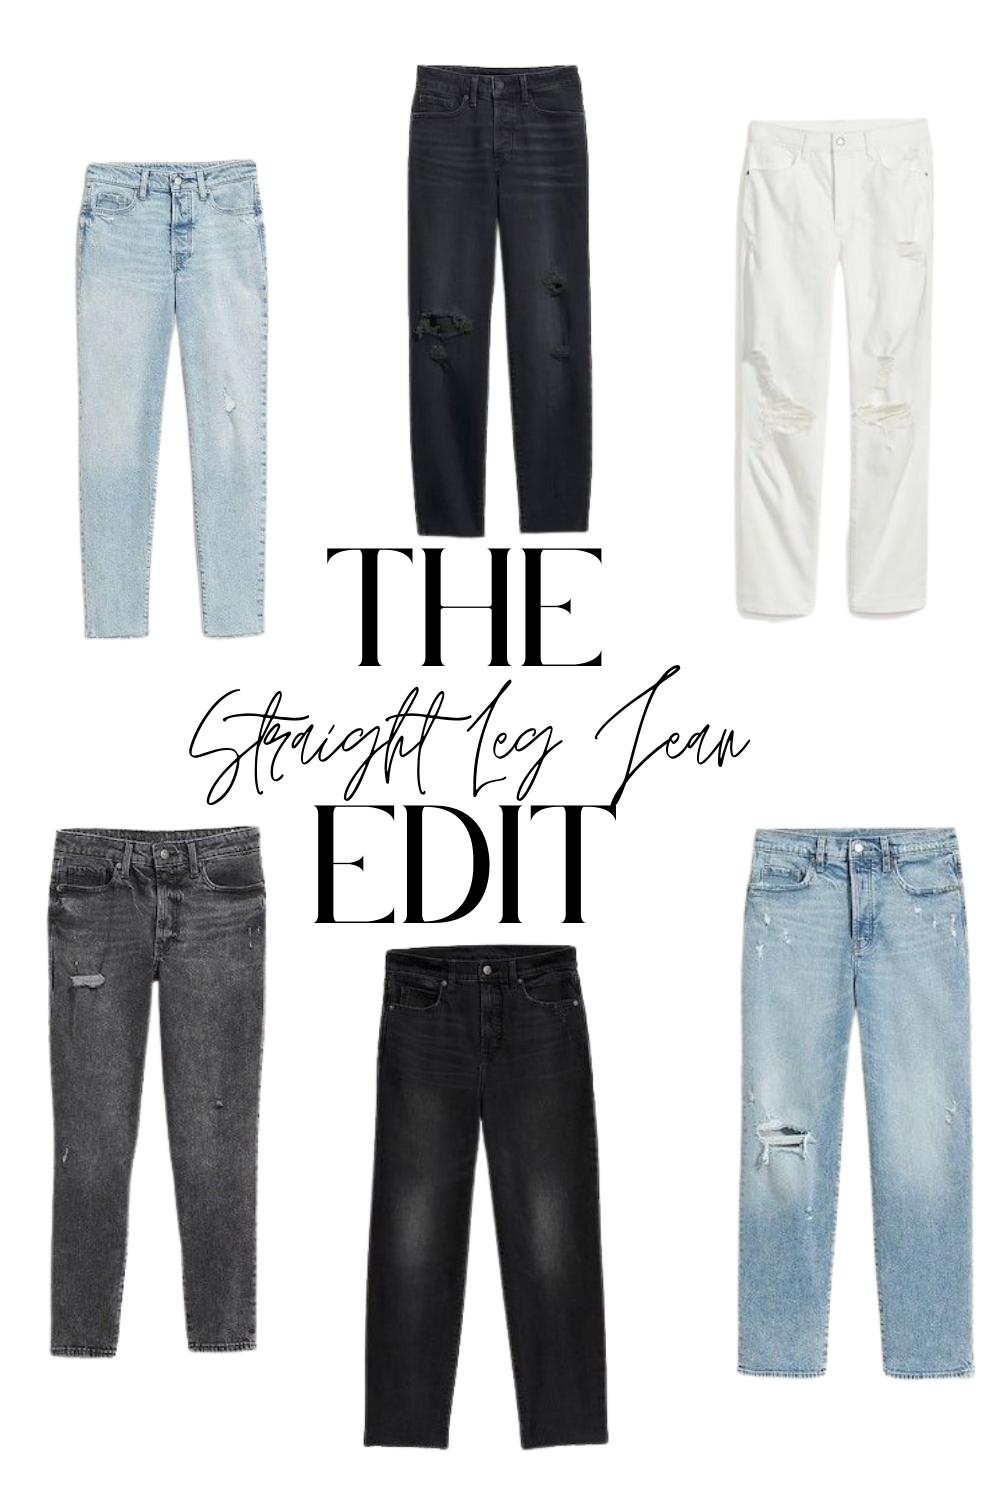 What to Shop: Straight Leg Jeans